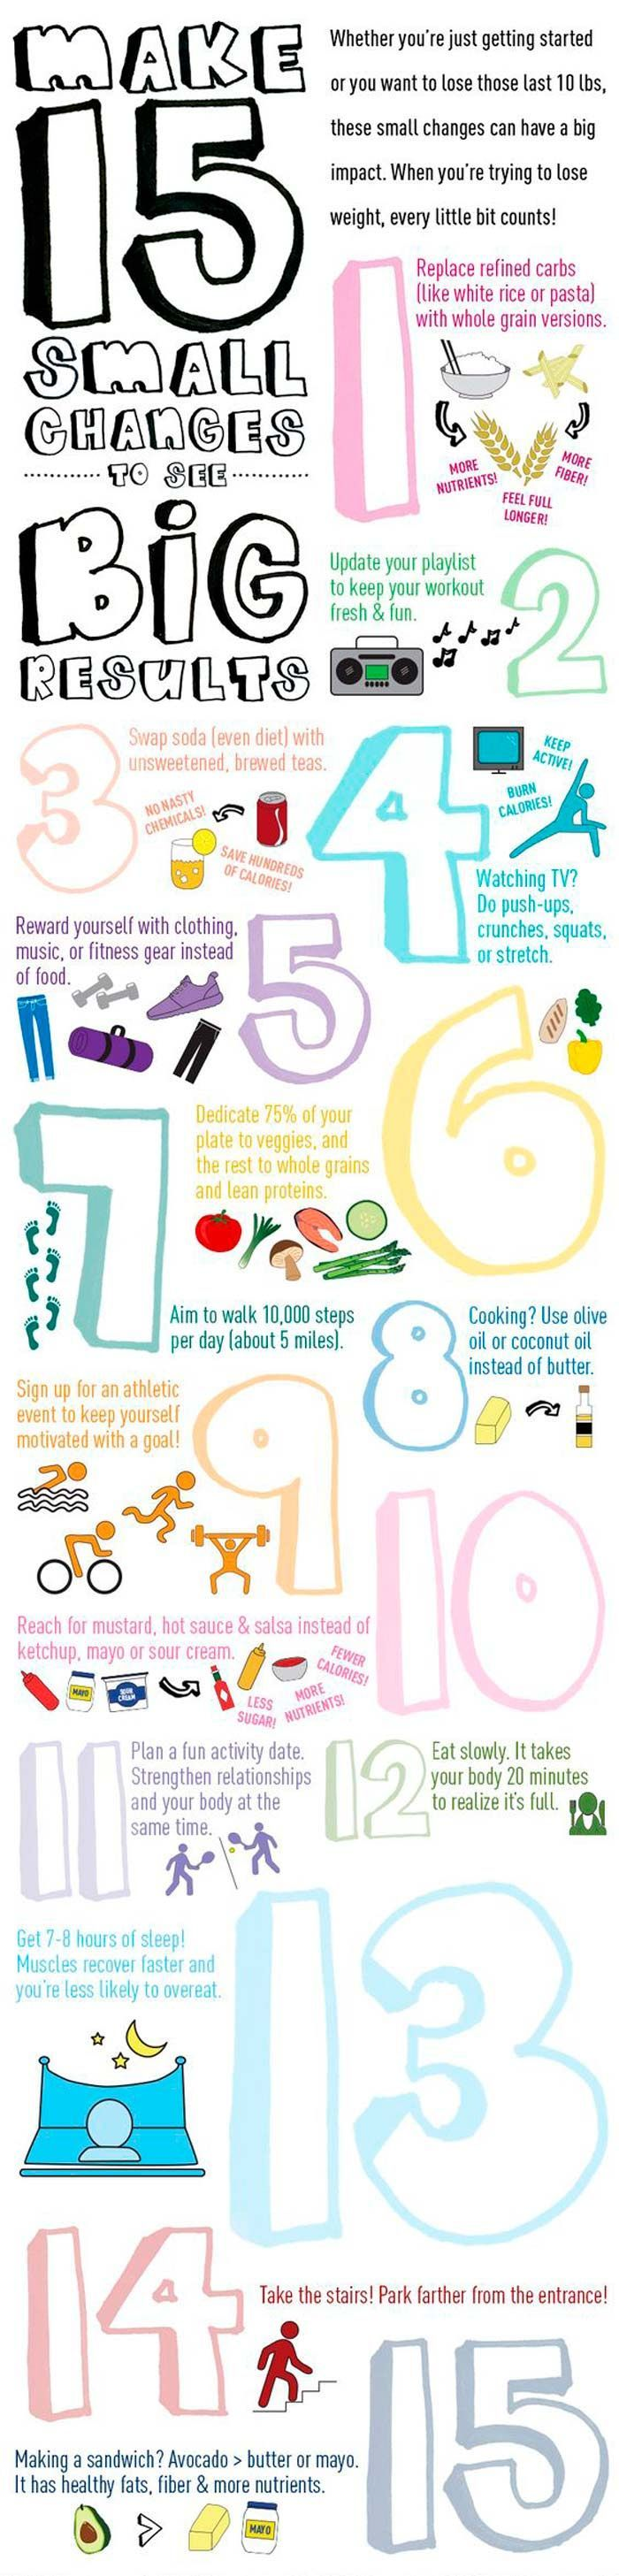 21 Days to Living Lean 21 Days to Living Lean new images